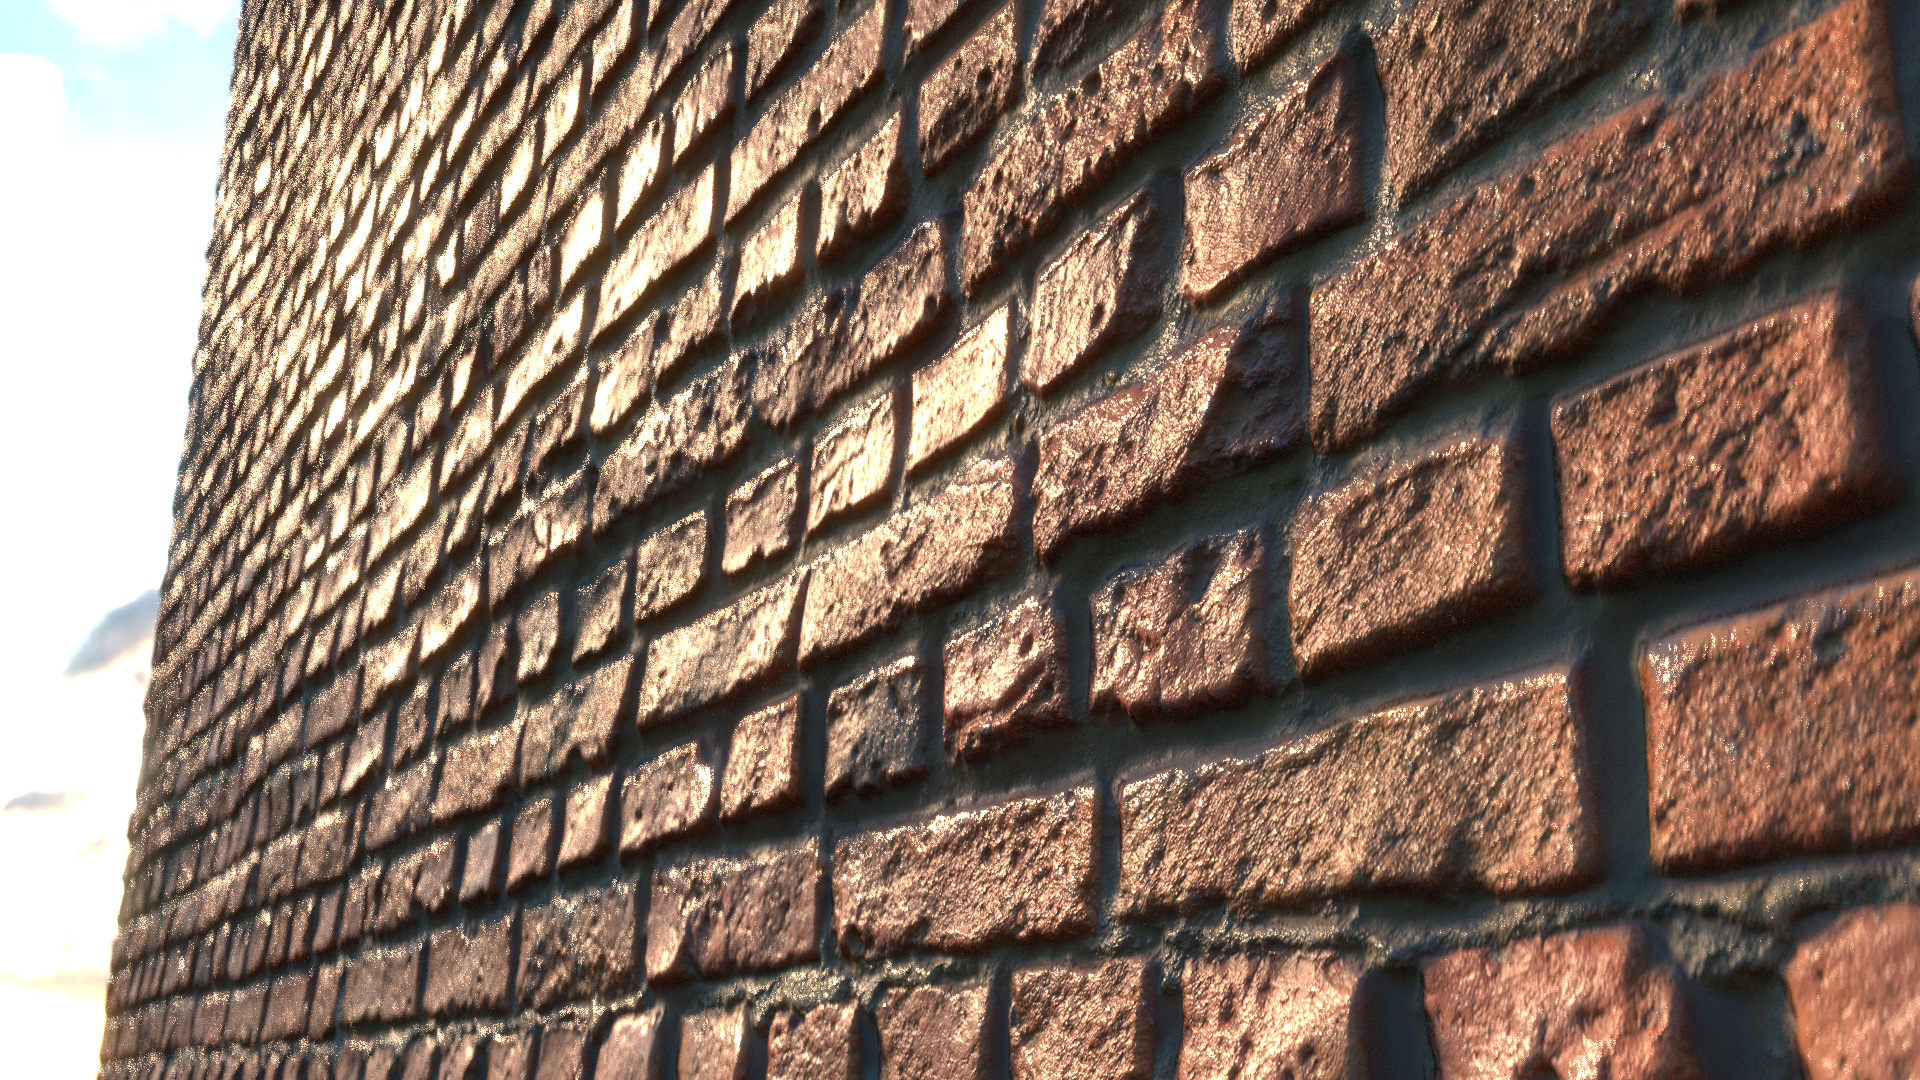 Download the  brick texture here